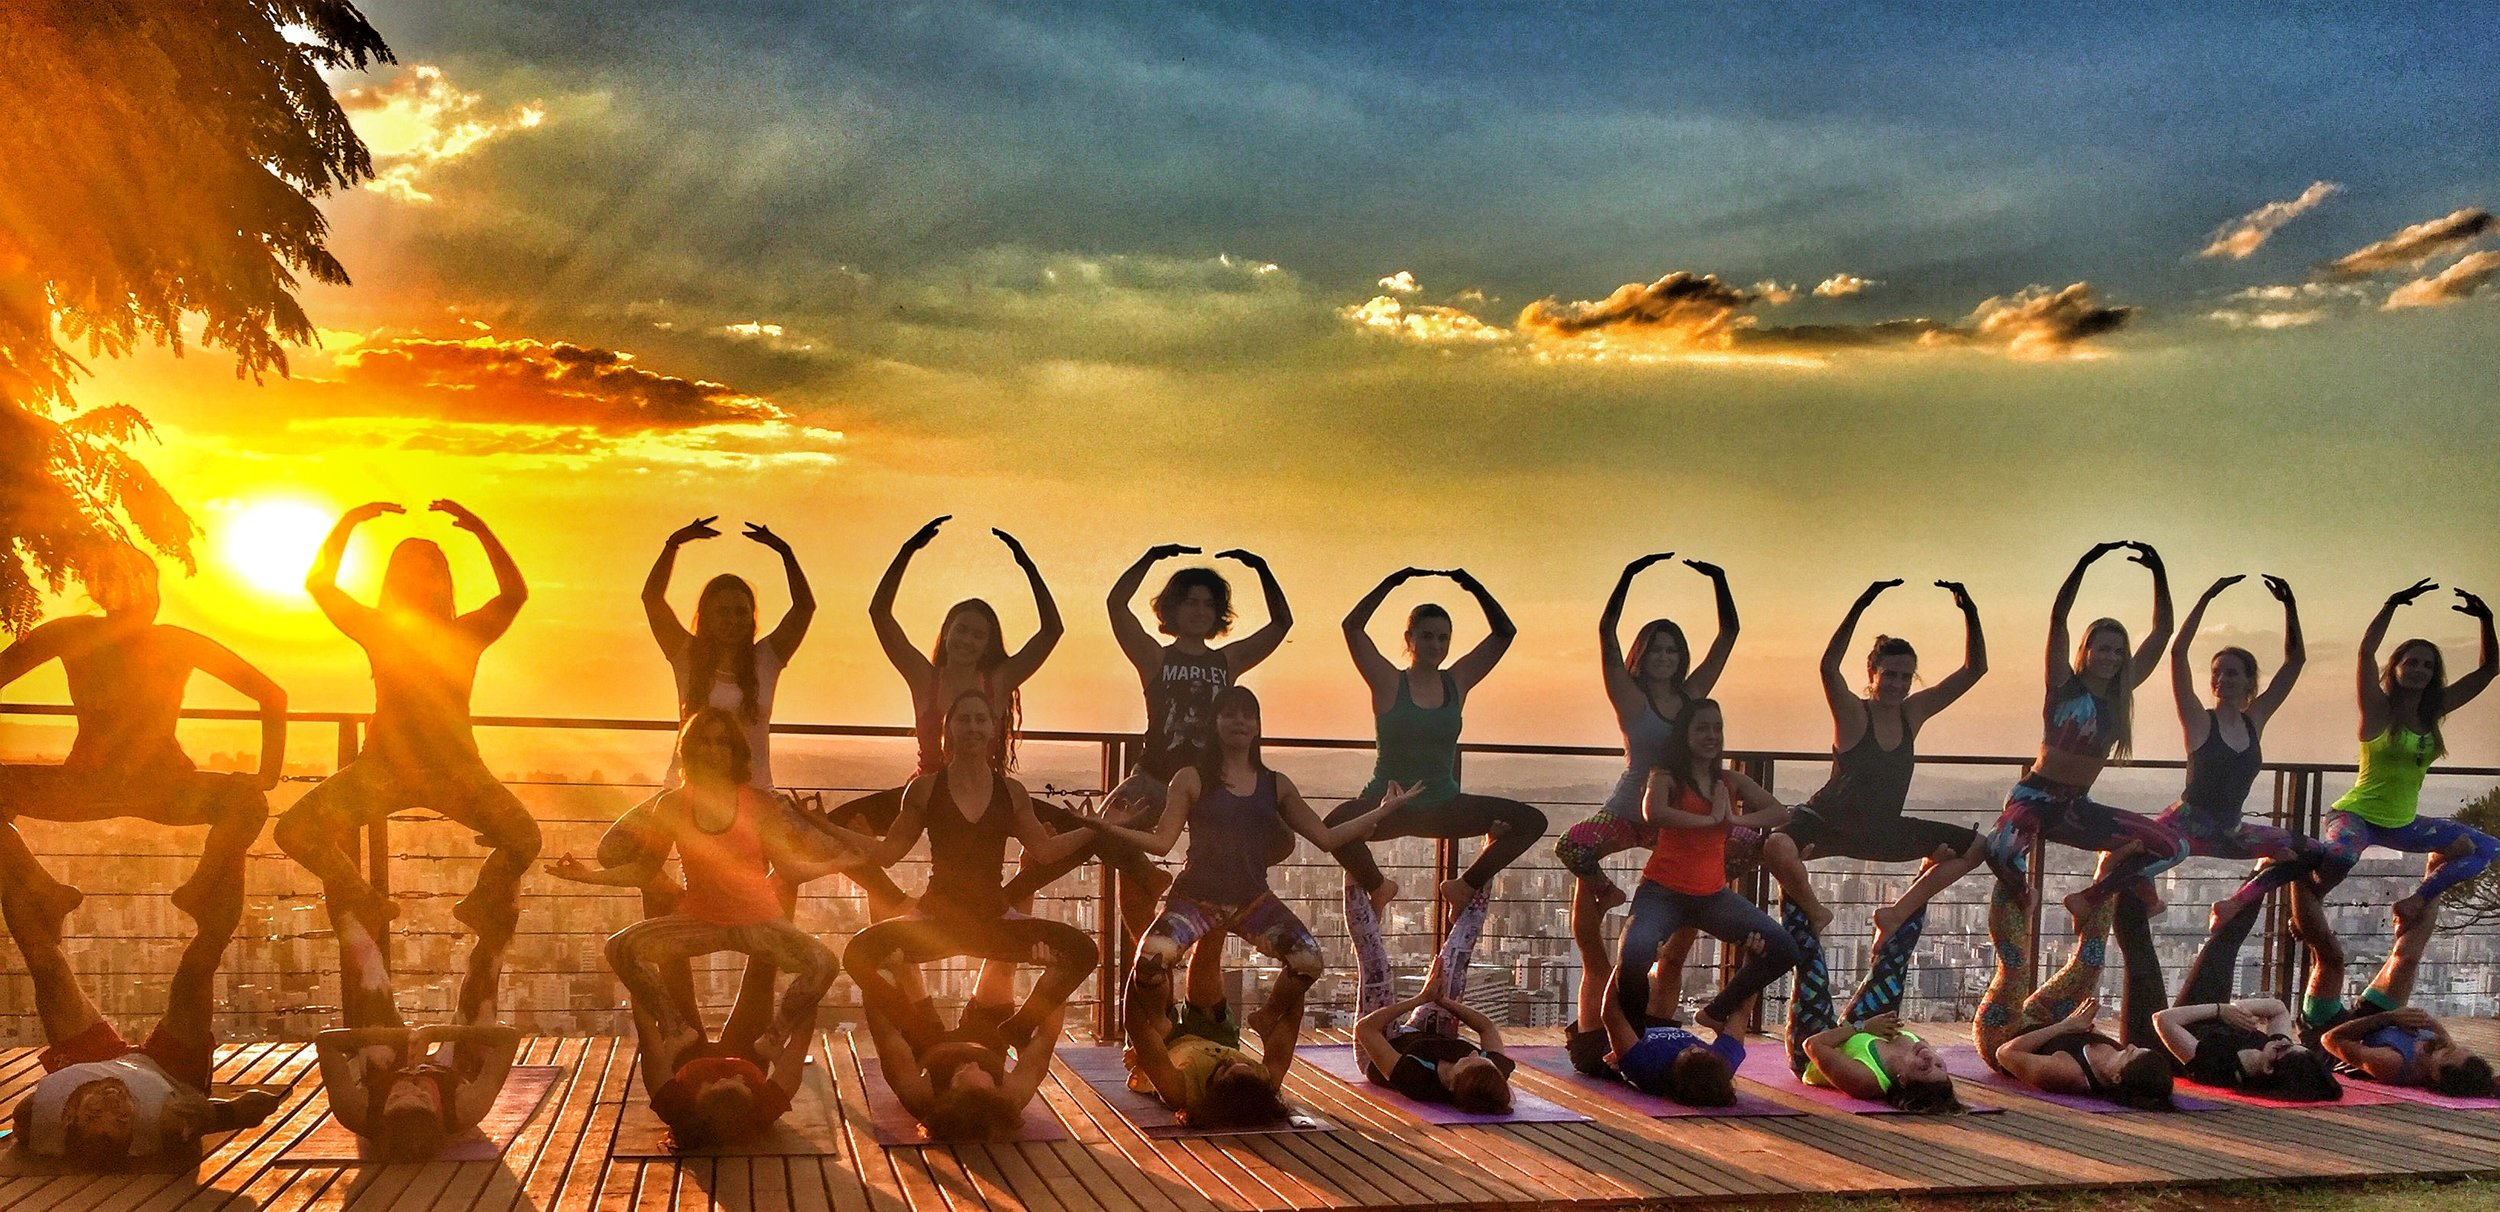 AcroYoga by the Sunset 2